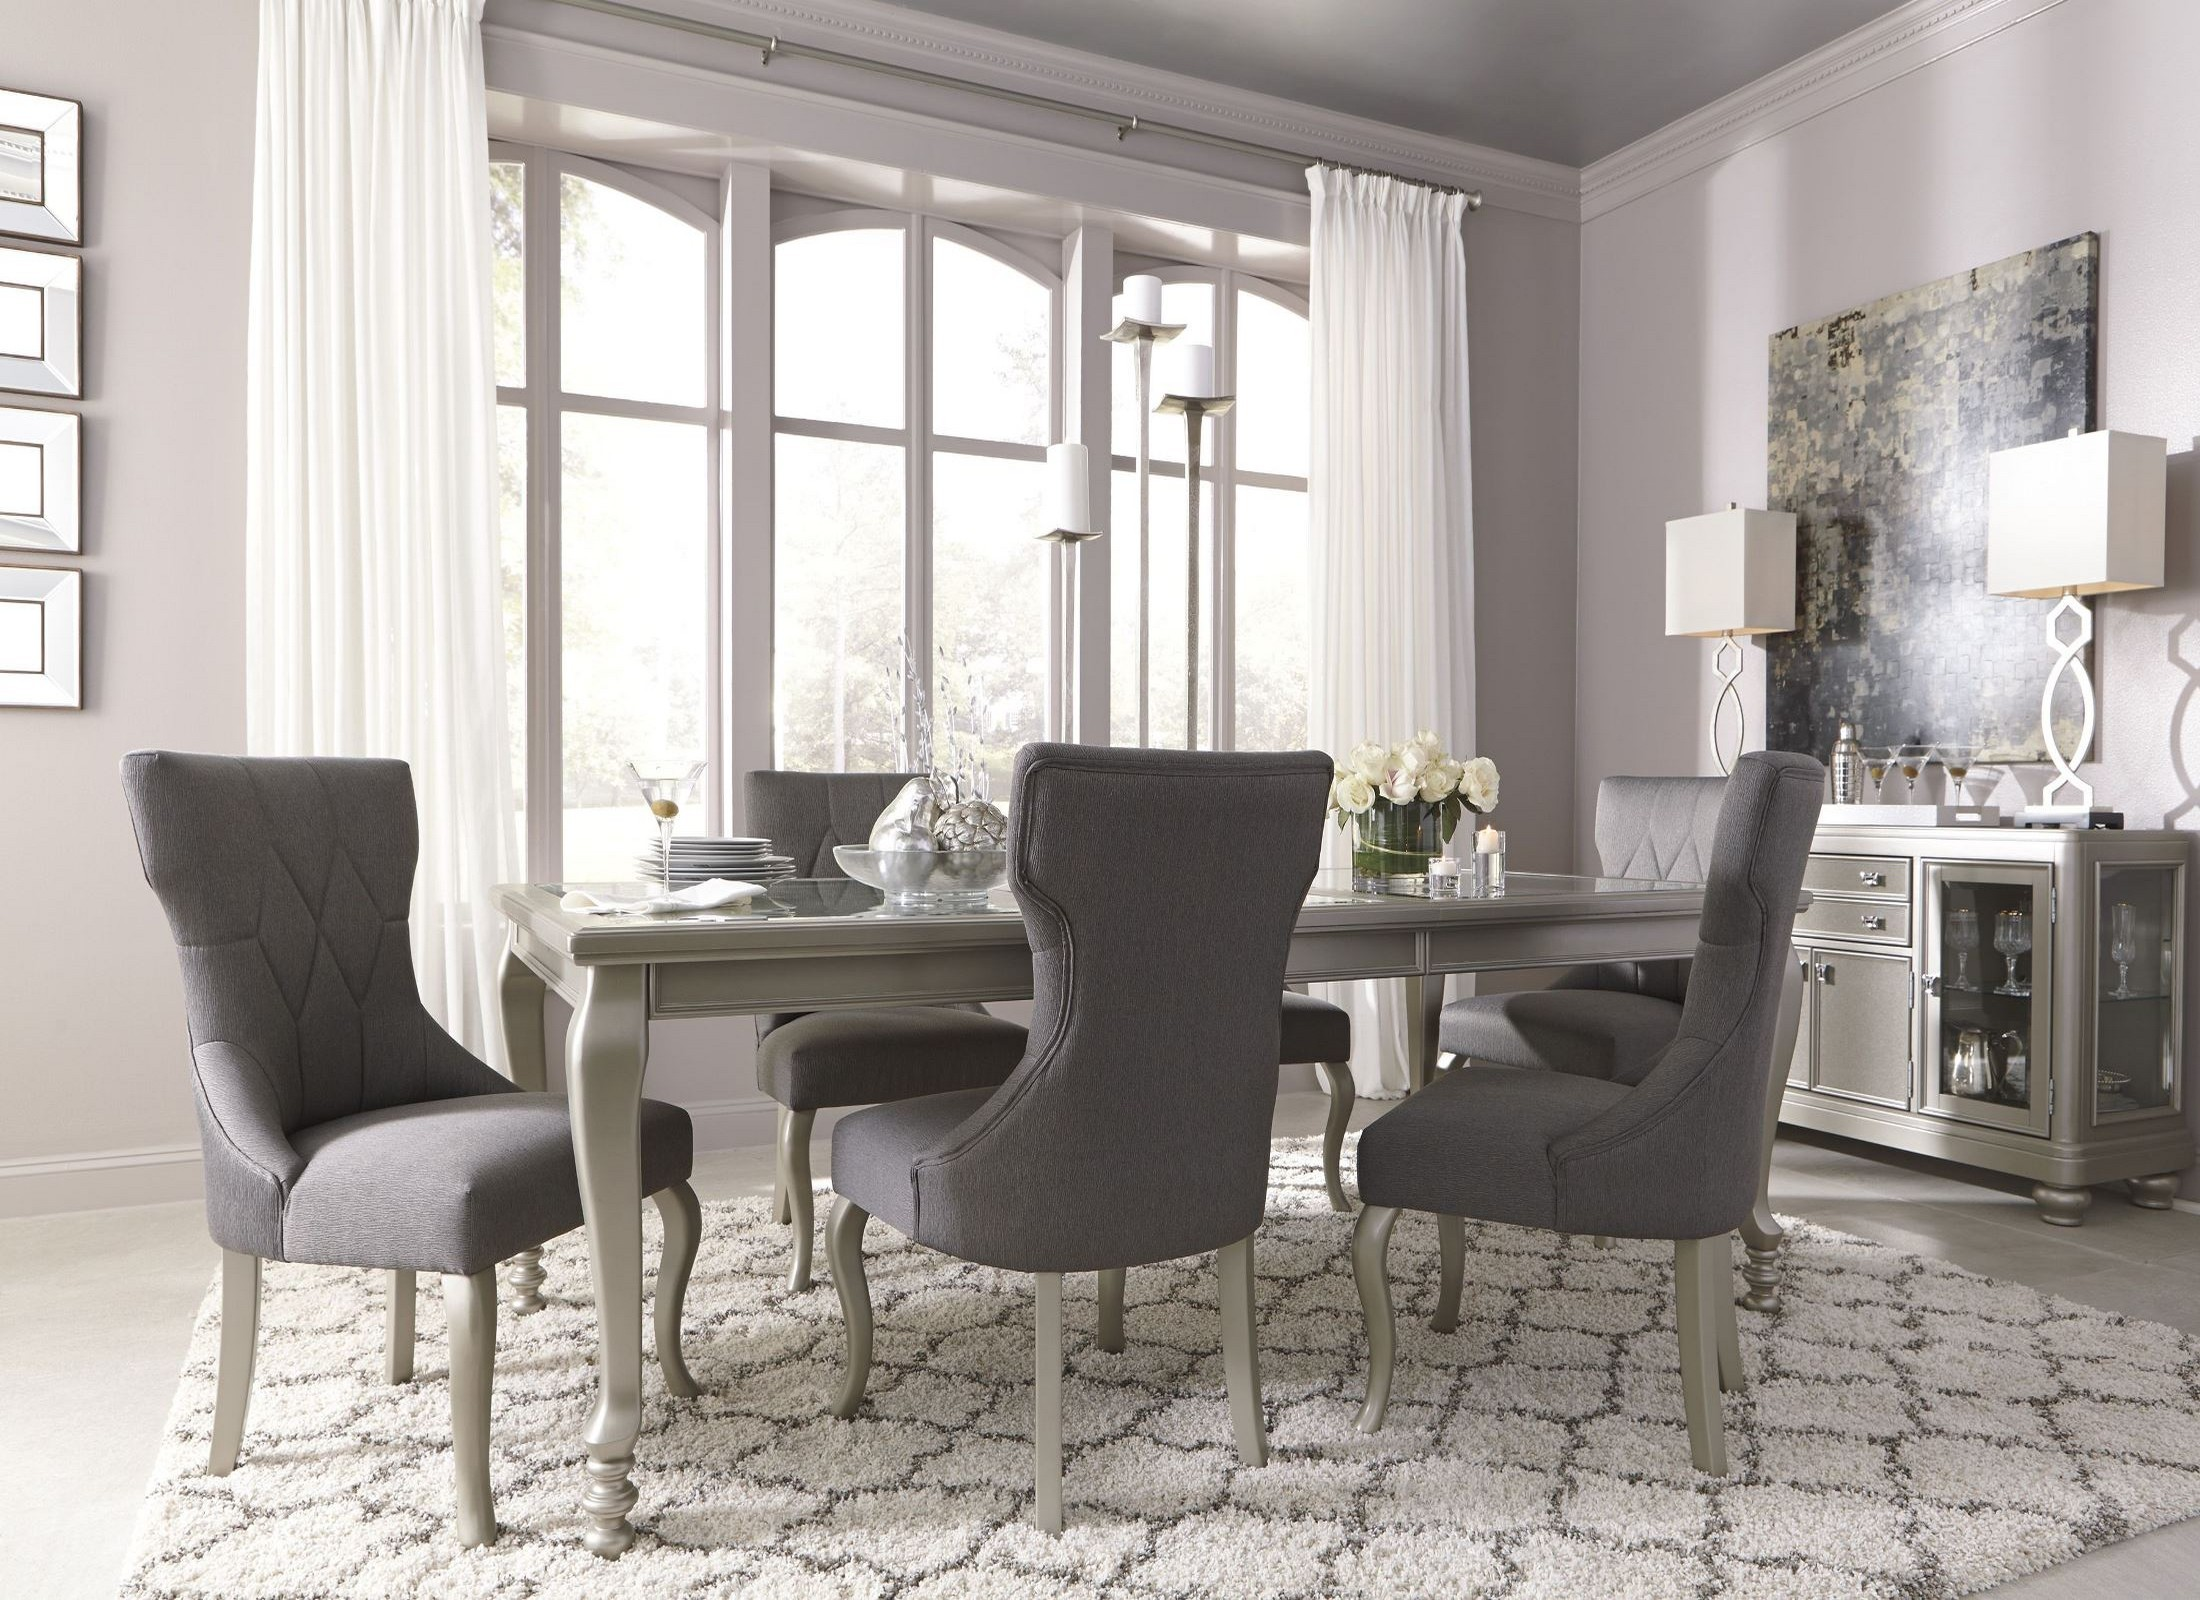 dinning coaster tumbeela casual sets set cream group chair com dining nc fine furniture raleigh upholstered room with